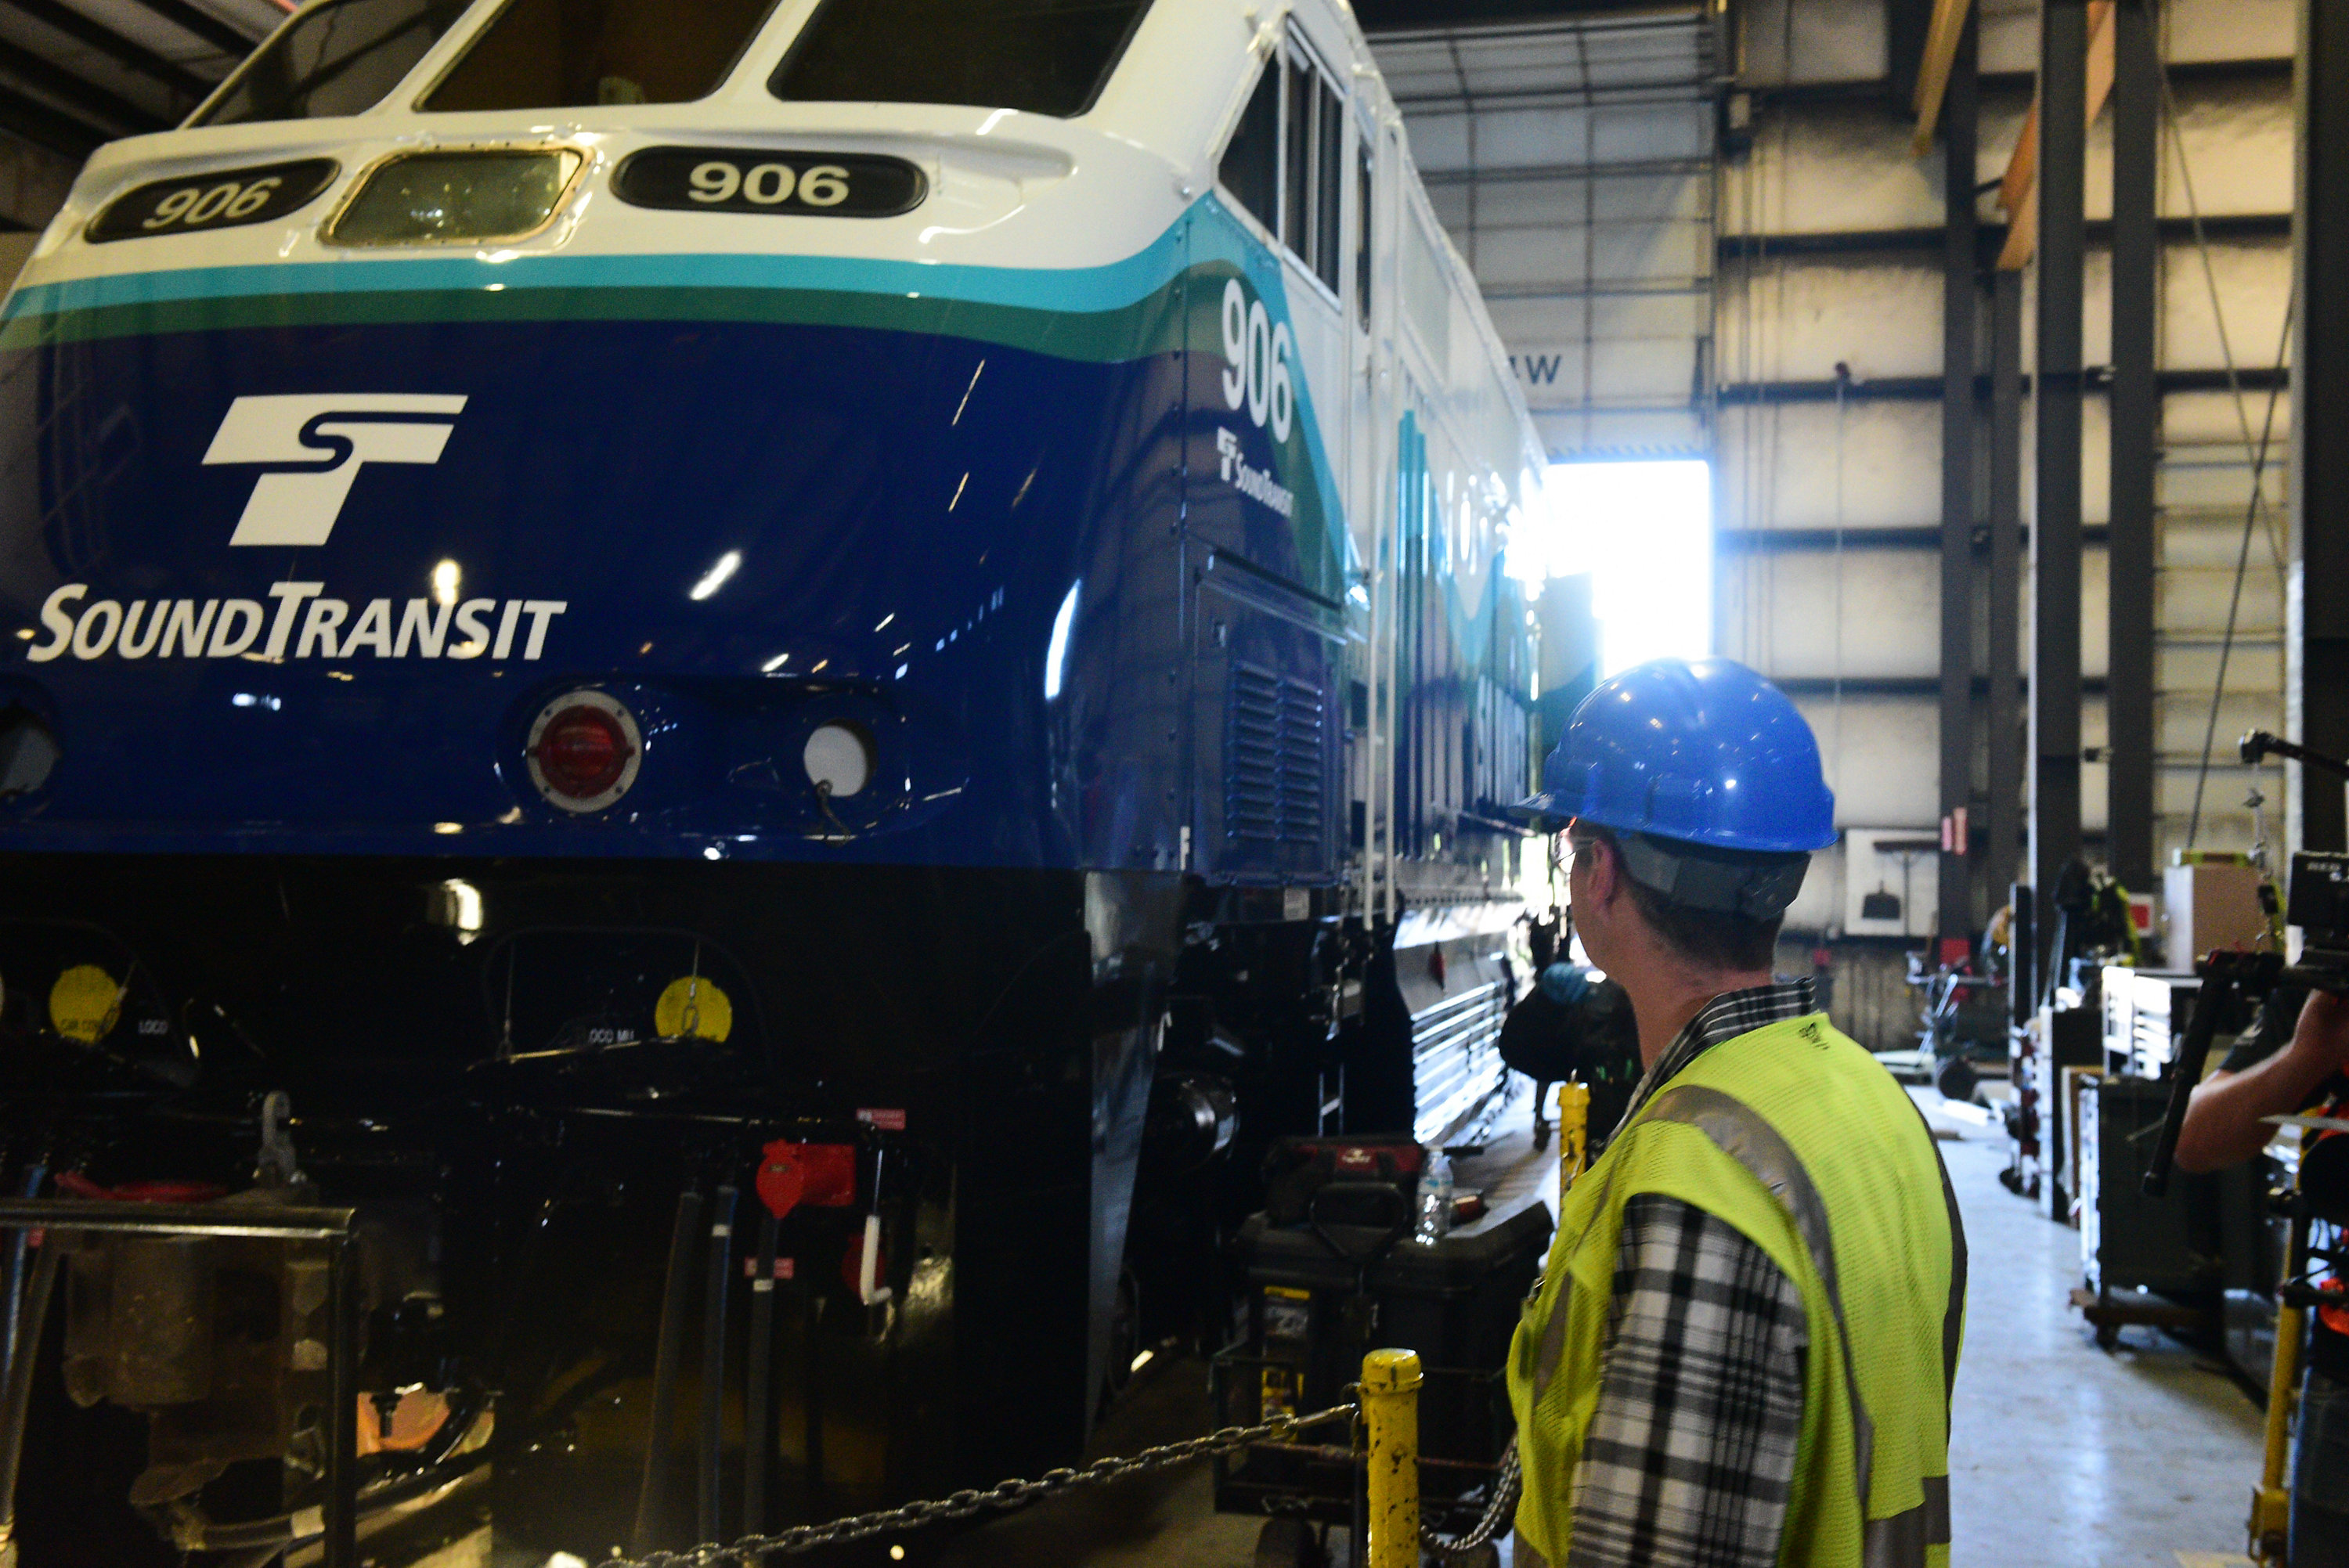 Sound Transit Repower Modernized Passenger Locomotive Repowered Locomotives